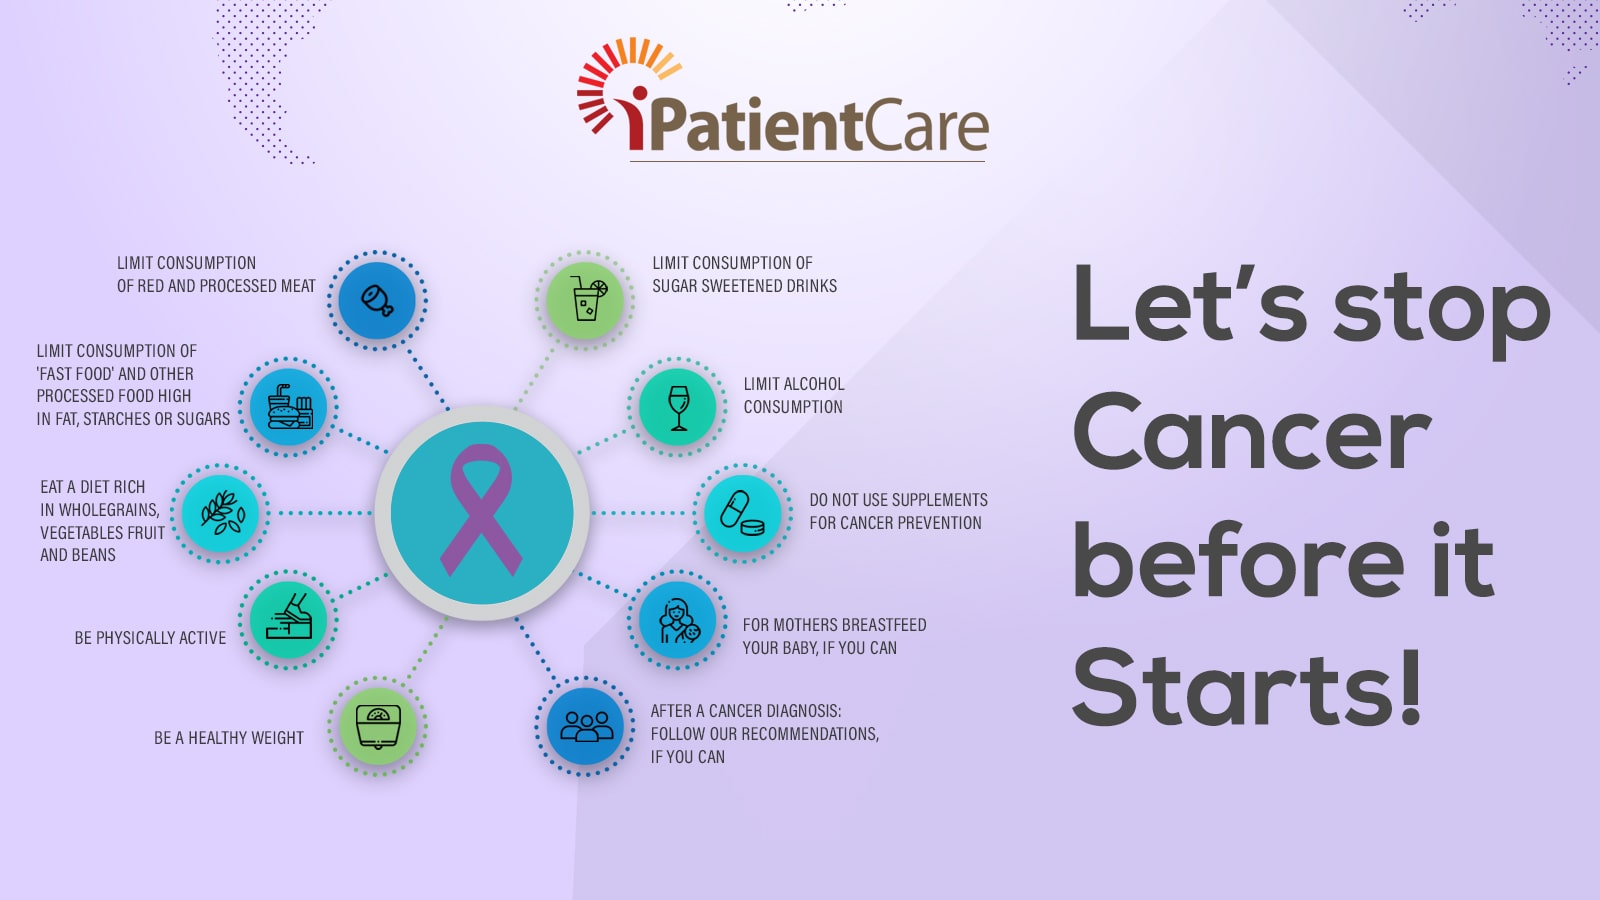 iPatientCare Blog - Stop Cancer before it starts